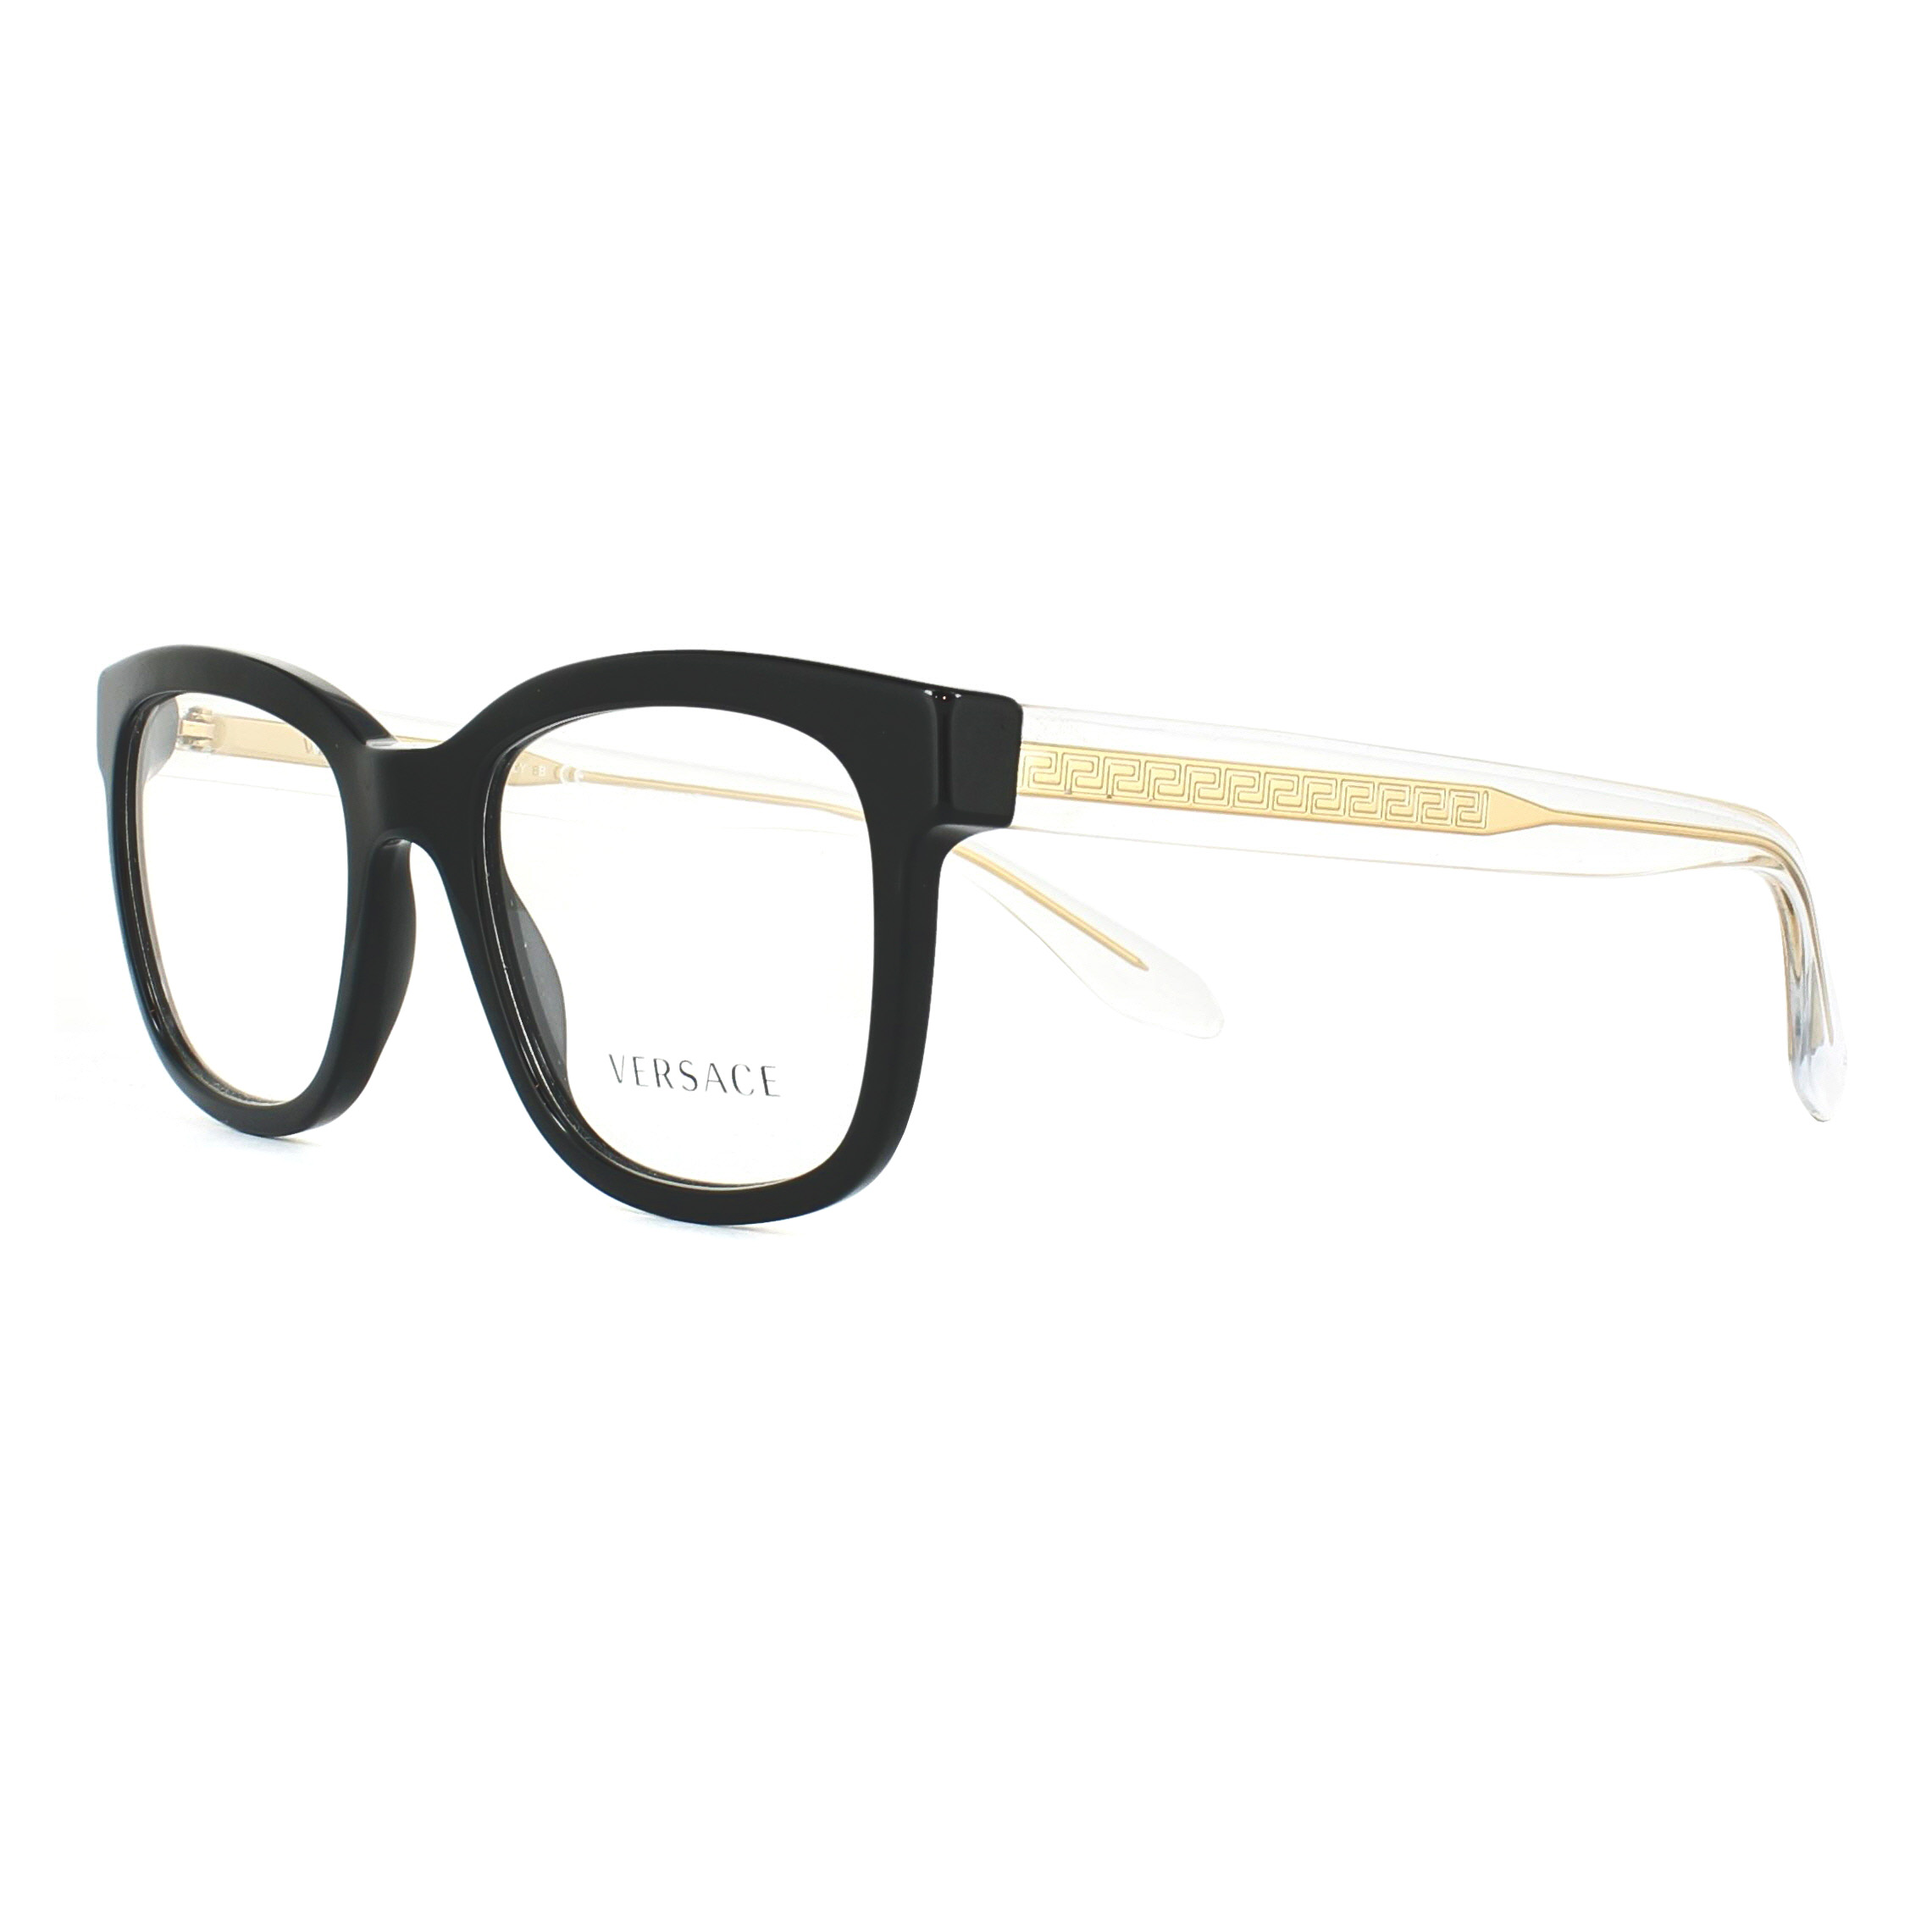 d6af96e3821 Versace Glasses Frames 3239 GB1 Black 52mm Womens 8053672644425